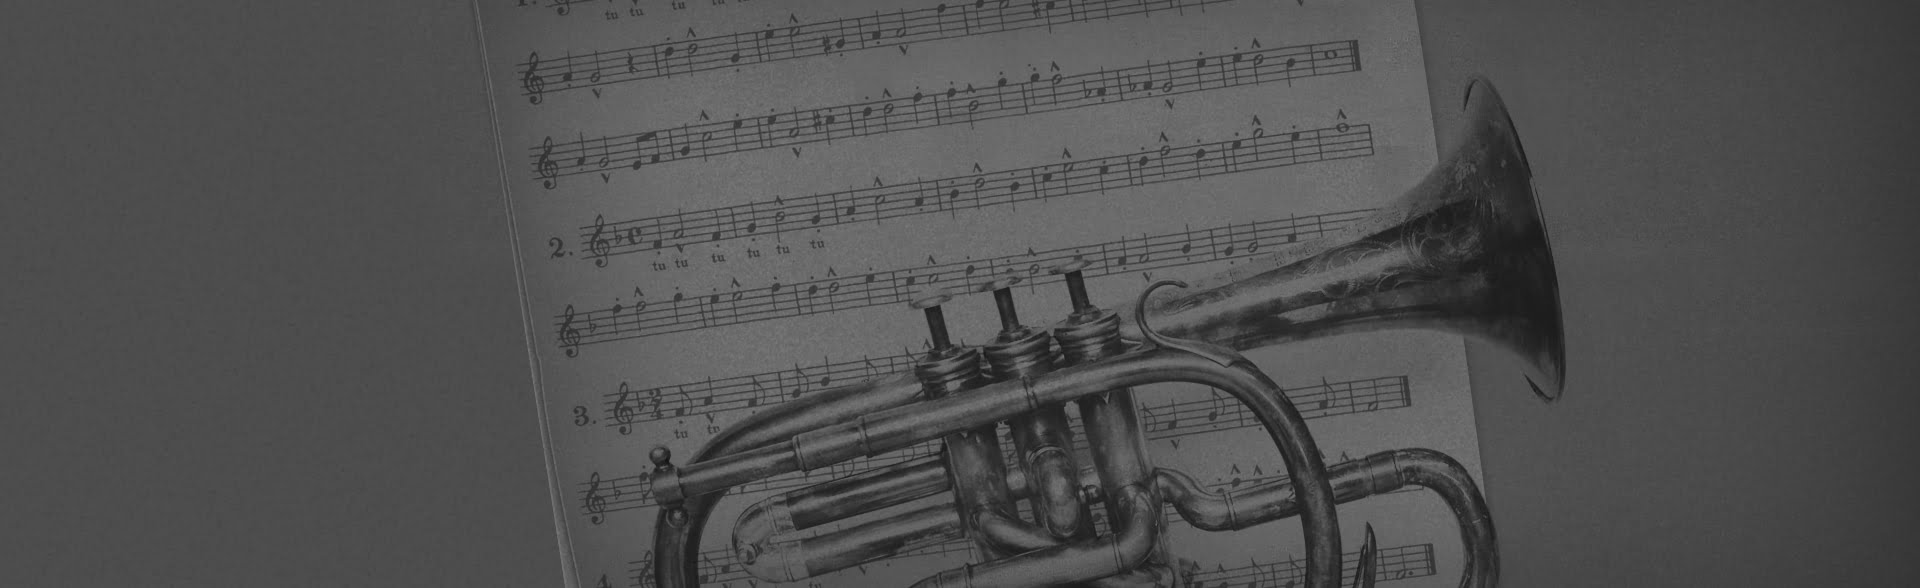 trumpet_arban_LP_header